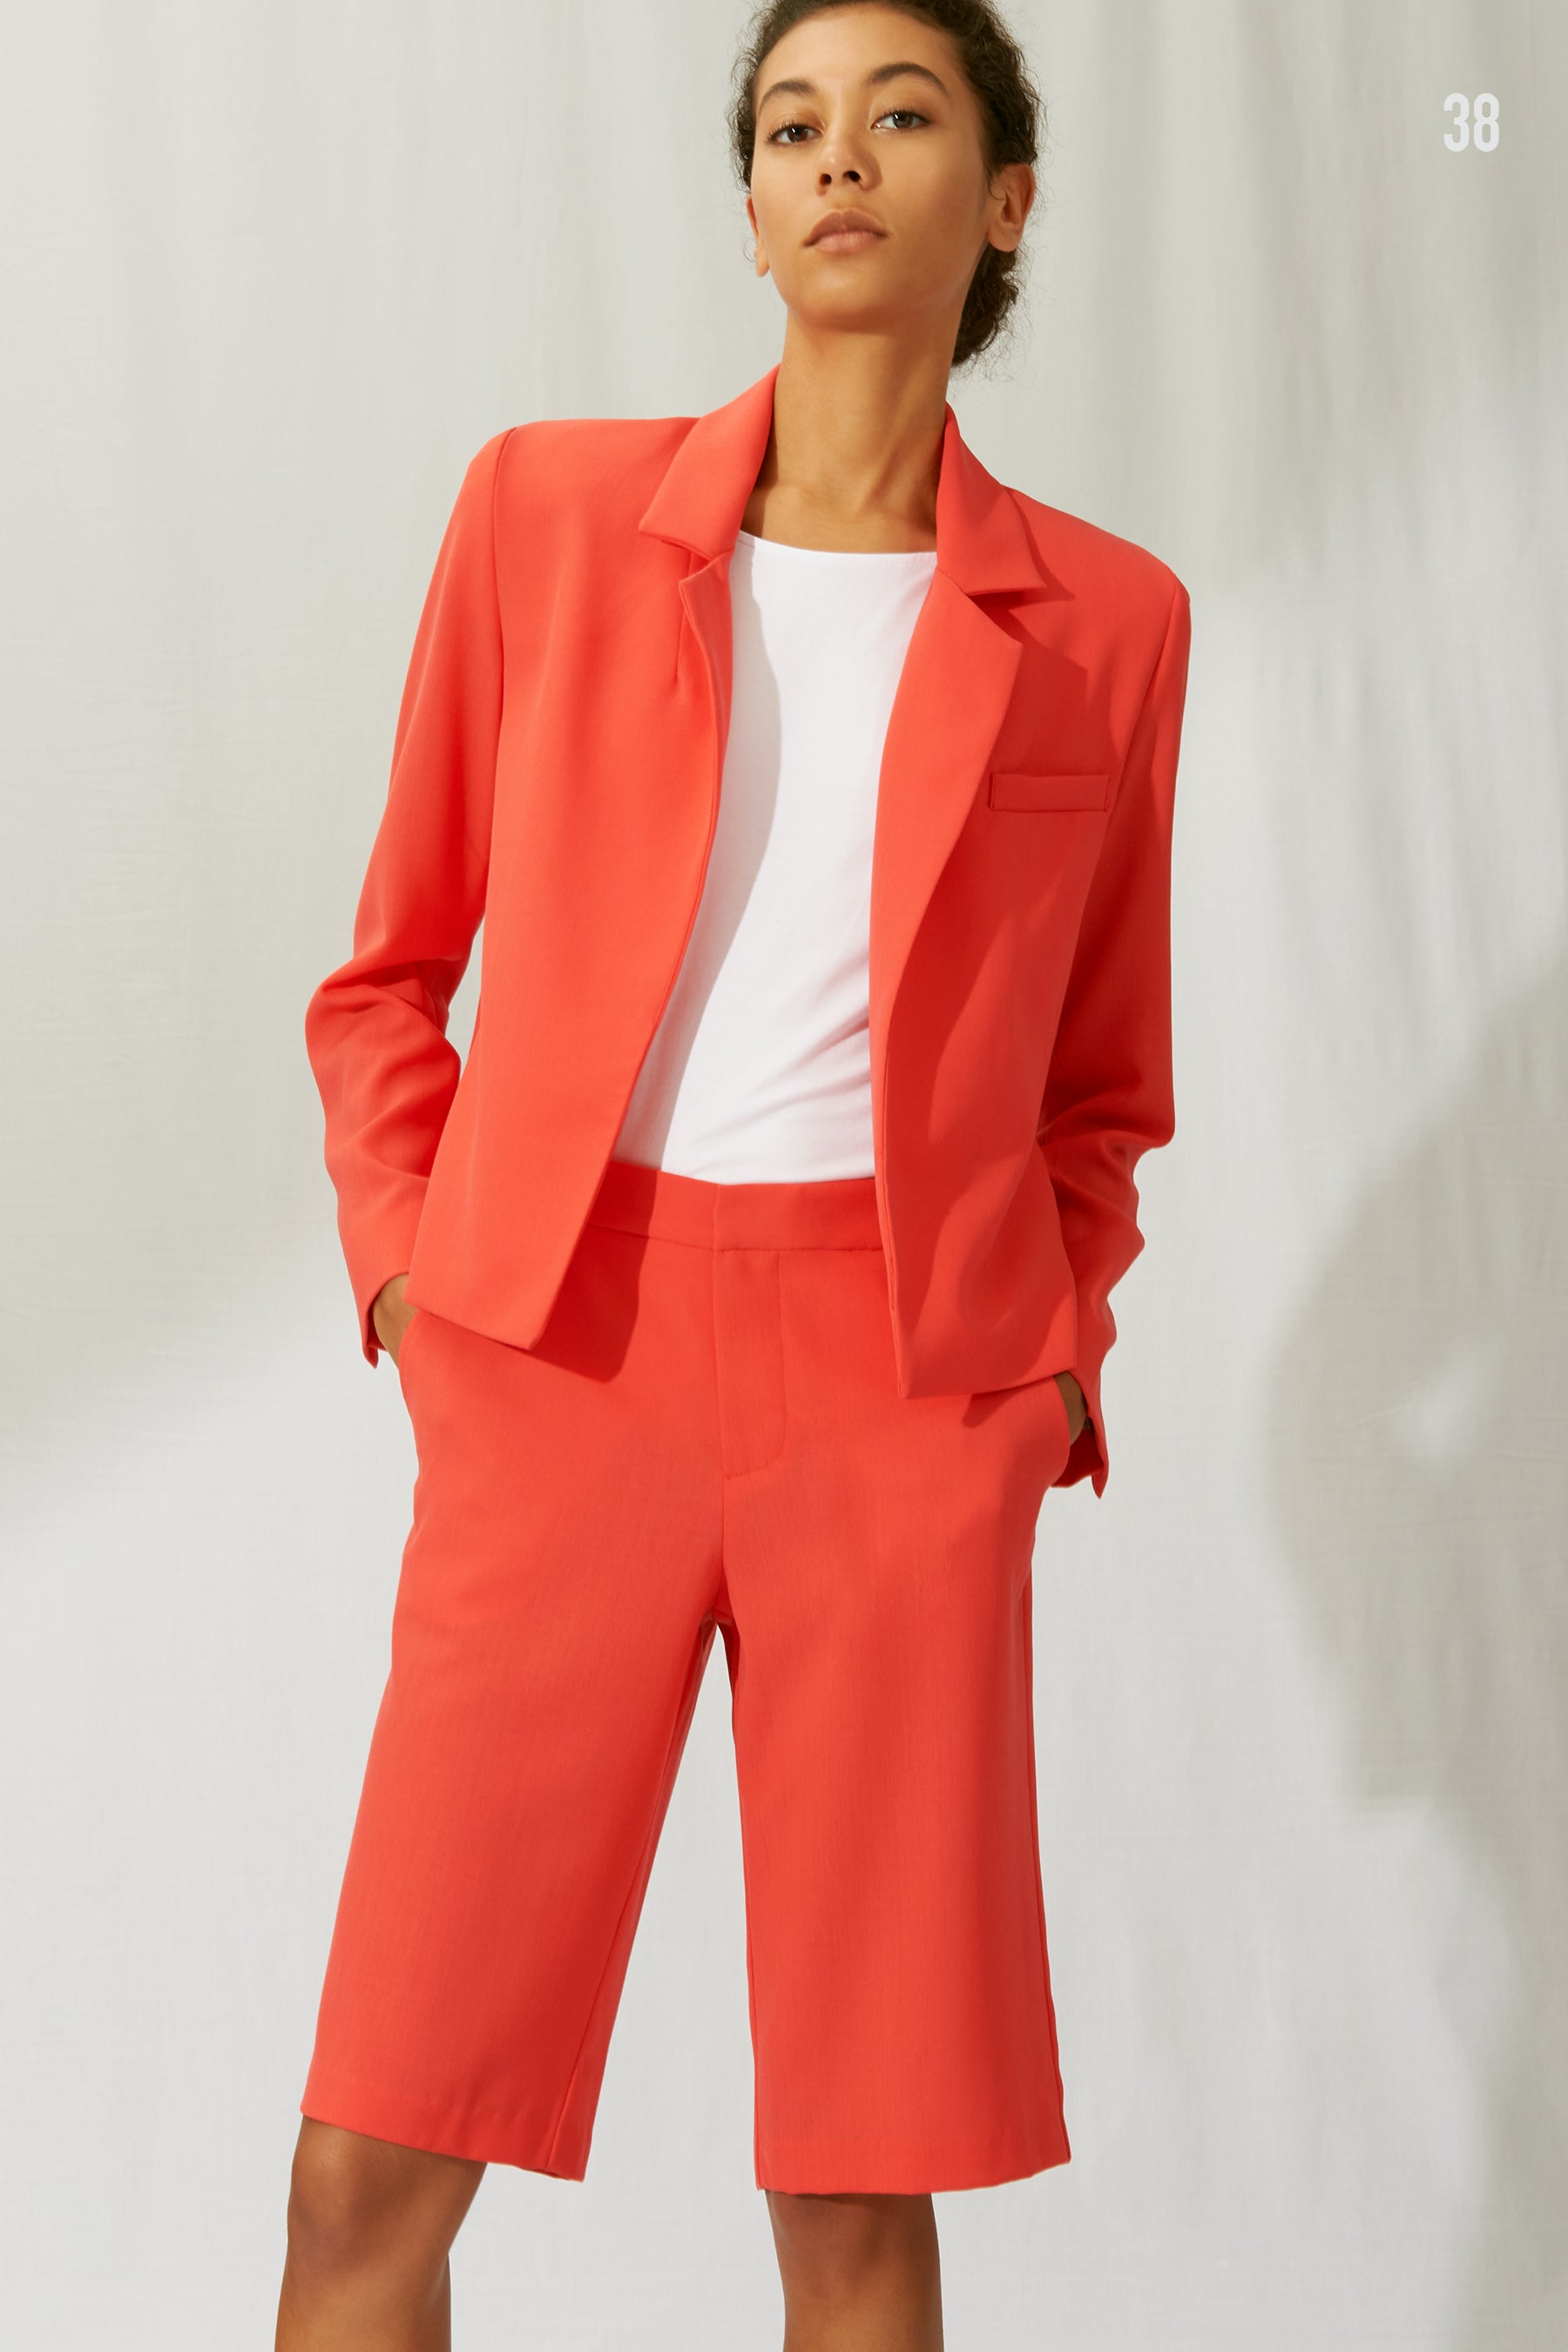 Kal Rieman Spring 2020 Lookbook Look 38